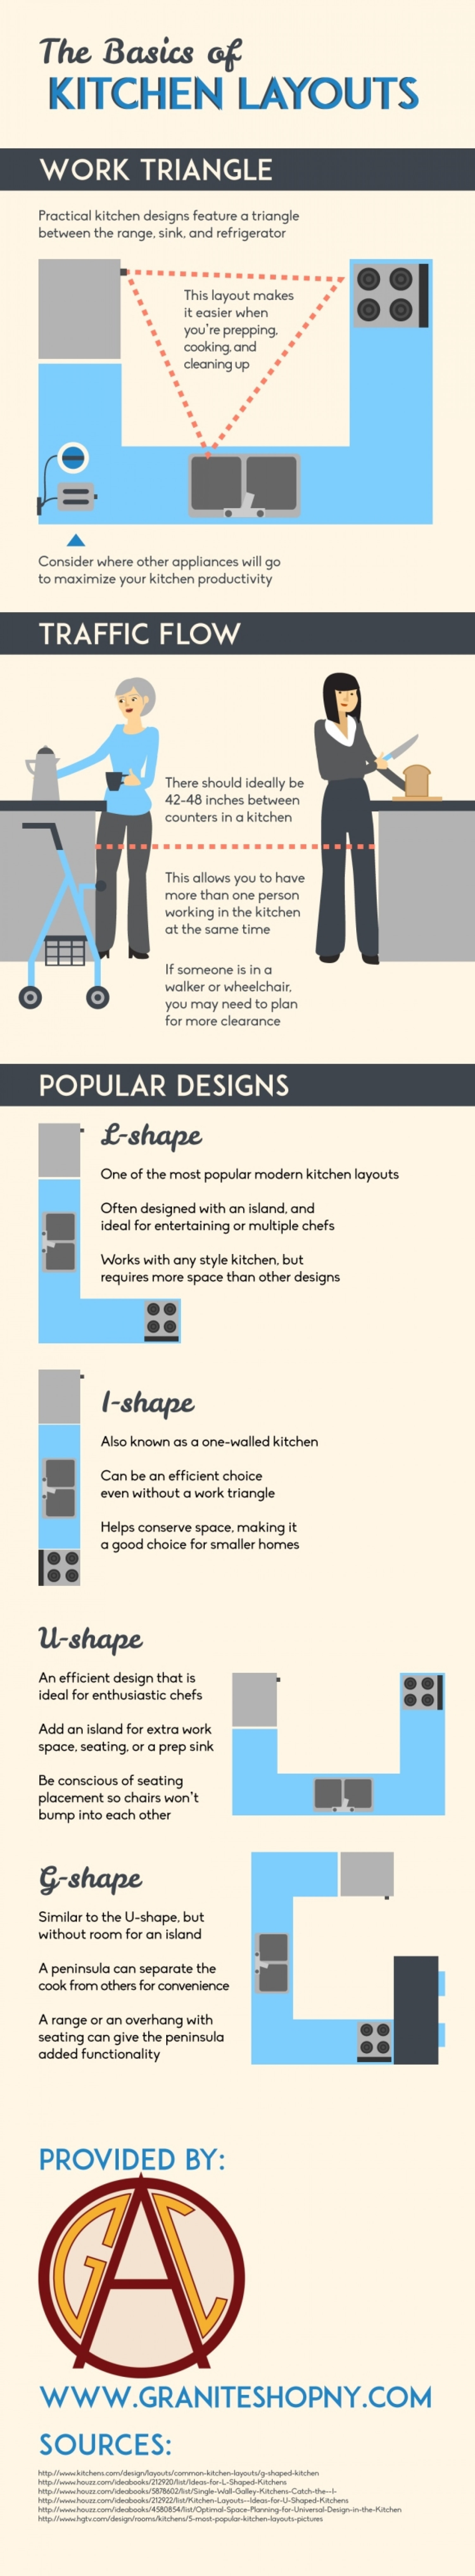 THE BASICS OF KITCHEN LAYOUTS  Infographic